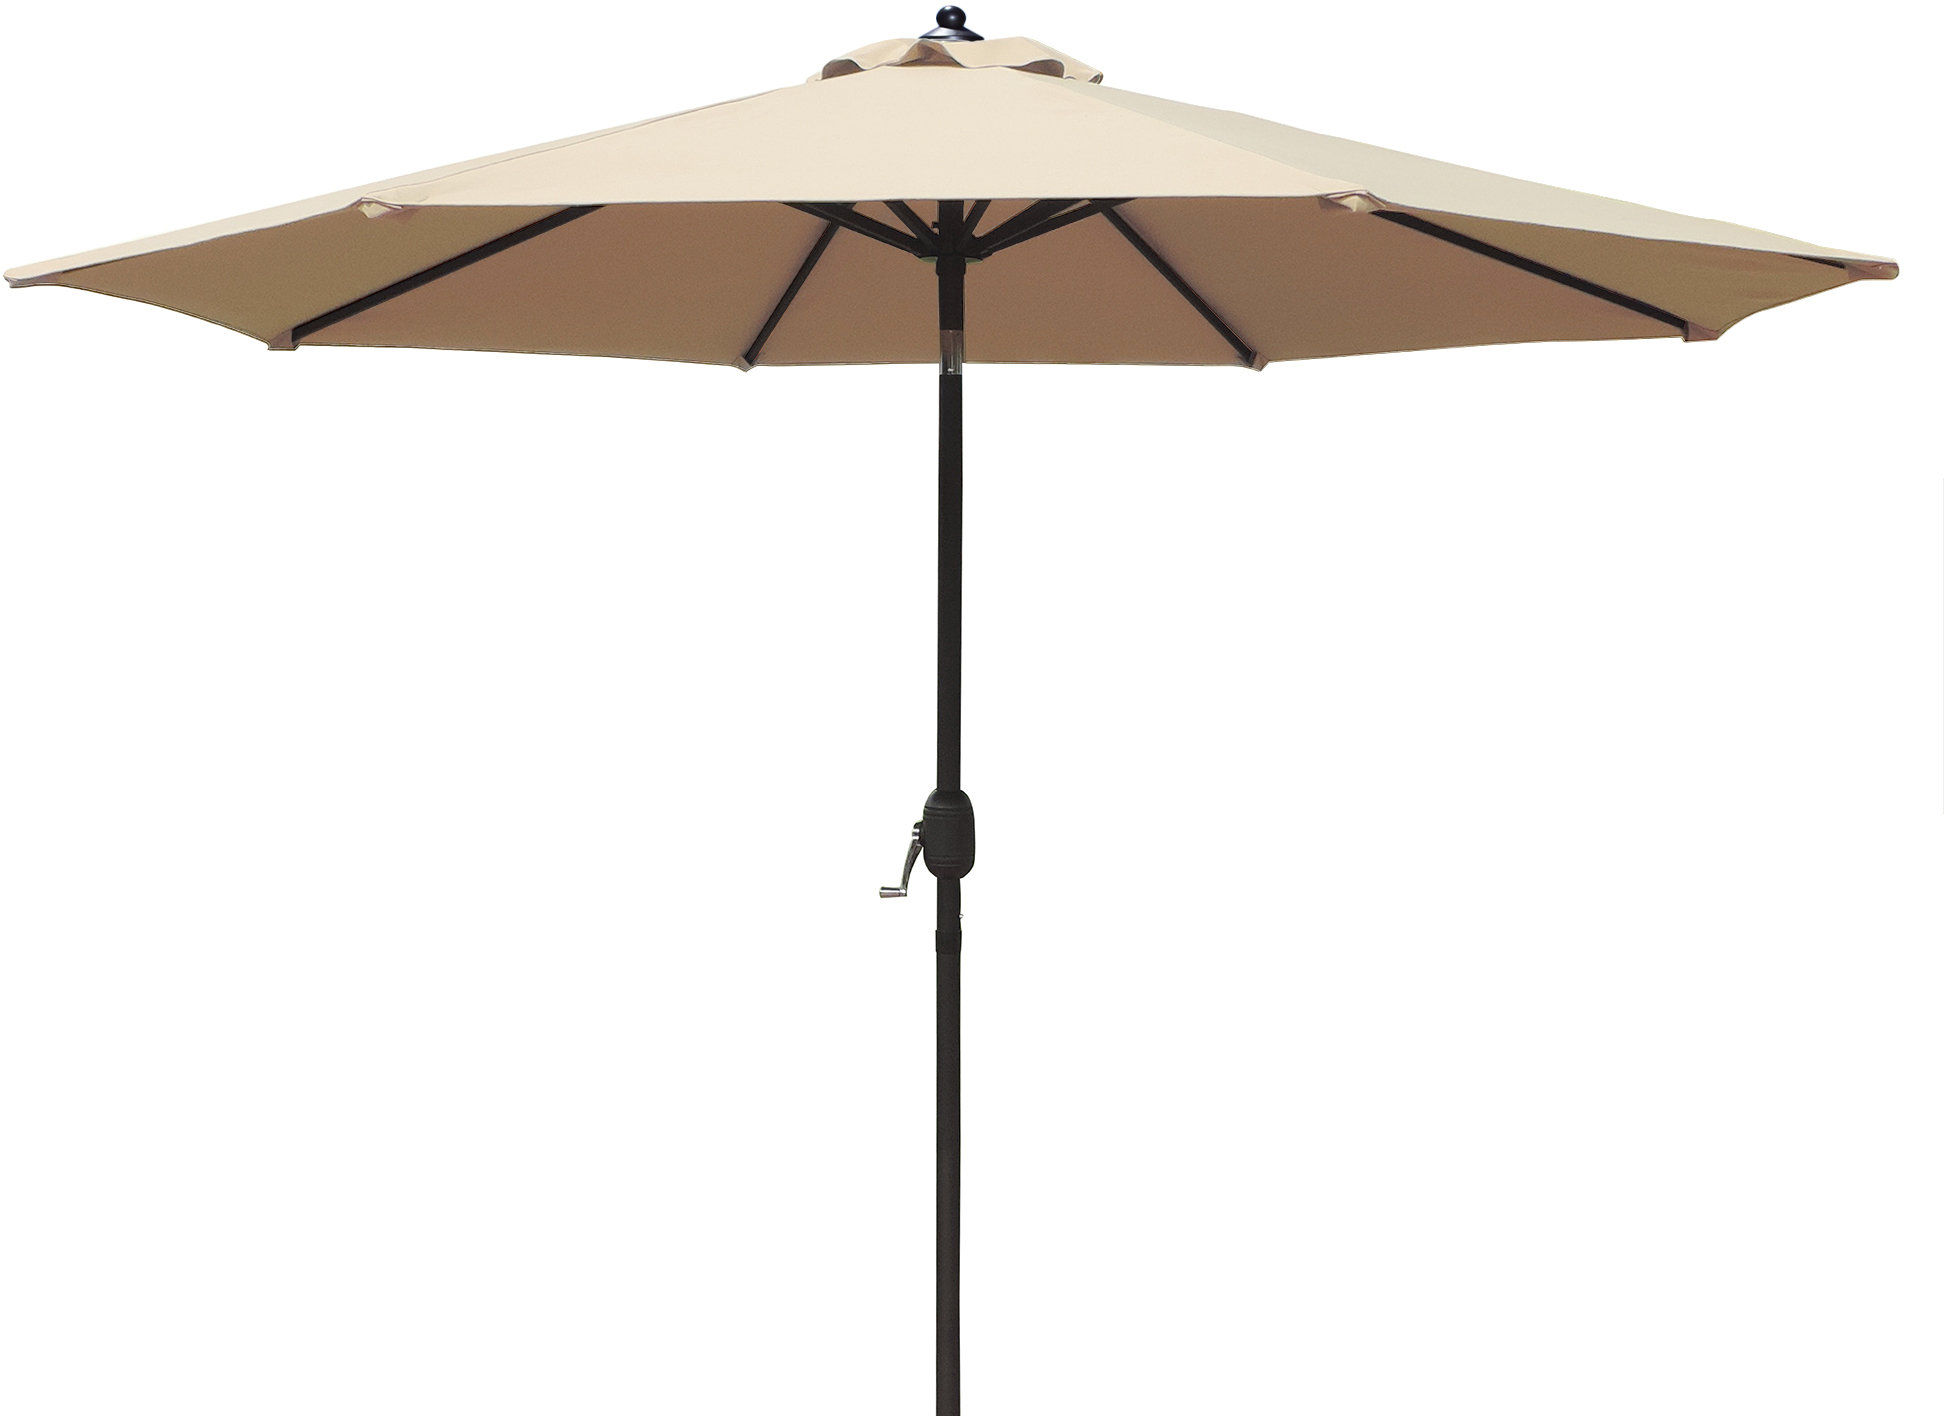 2019 9' Market Umbrella Within Cannock Market Umbrellas (View 14 of 20)